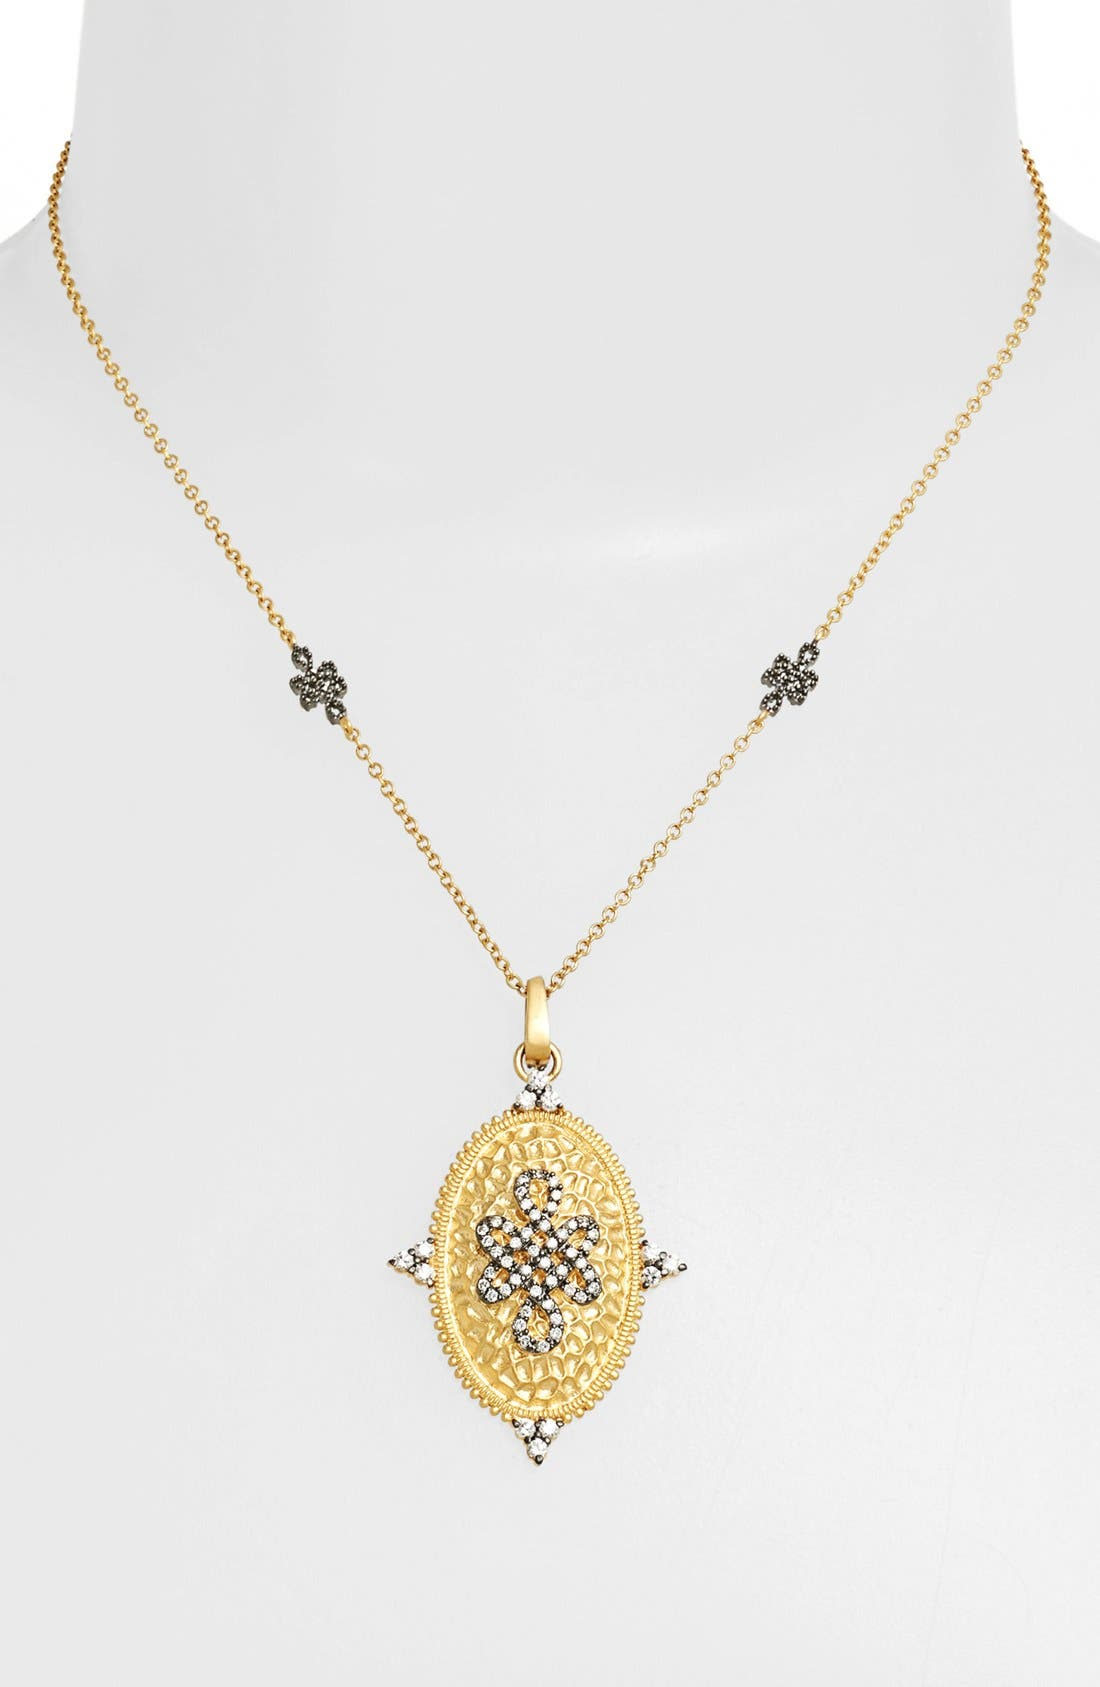 Alternate Image 1 Selected - FREIDA ROTHMAN 'Gramercy' Love Knot Shield Pendant Necklace